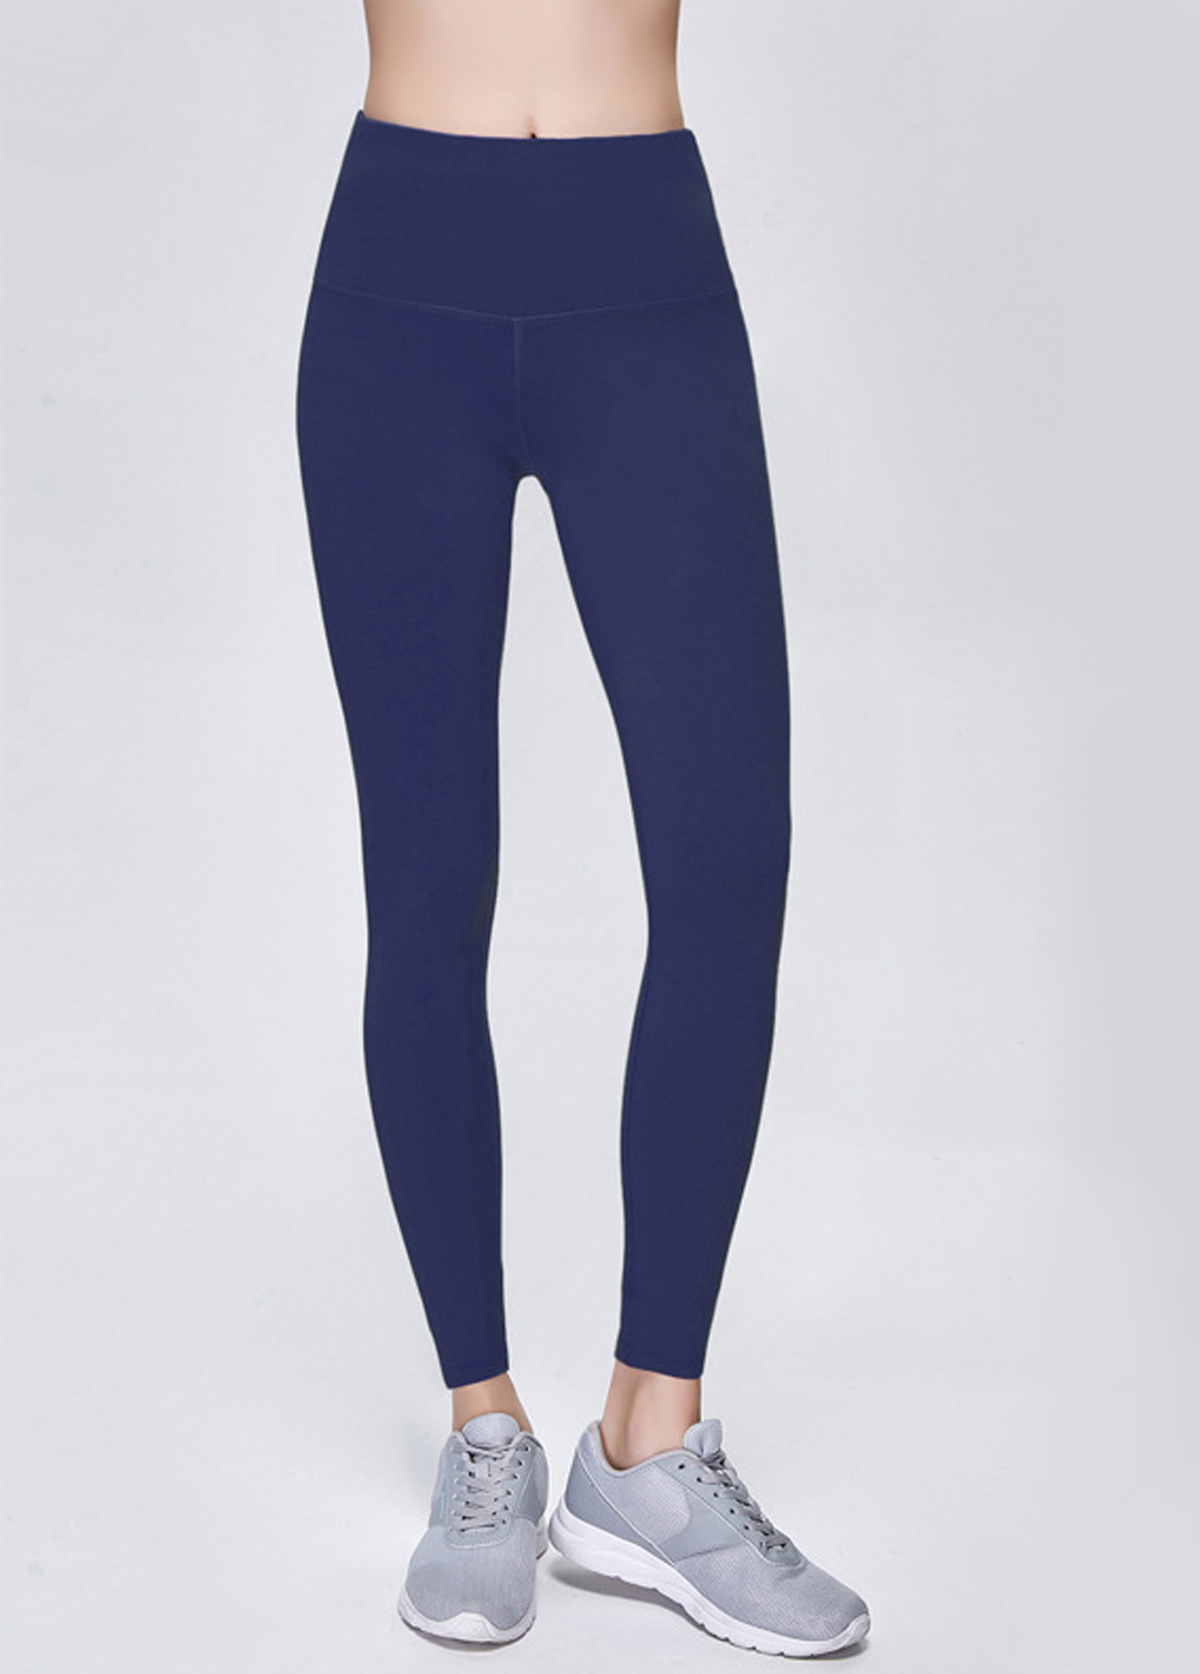 Navy Blue High Waist Elastic Quick Drying Yoga Pants